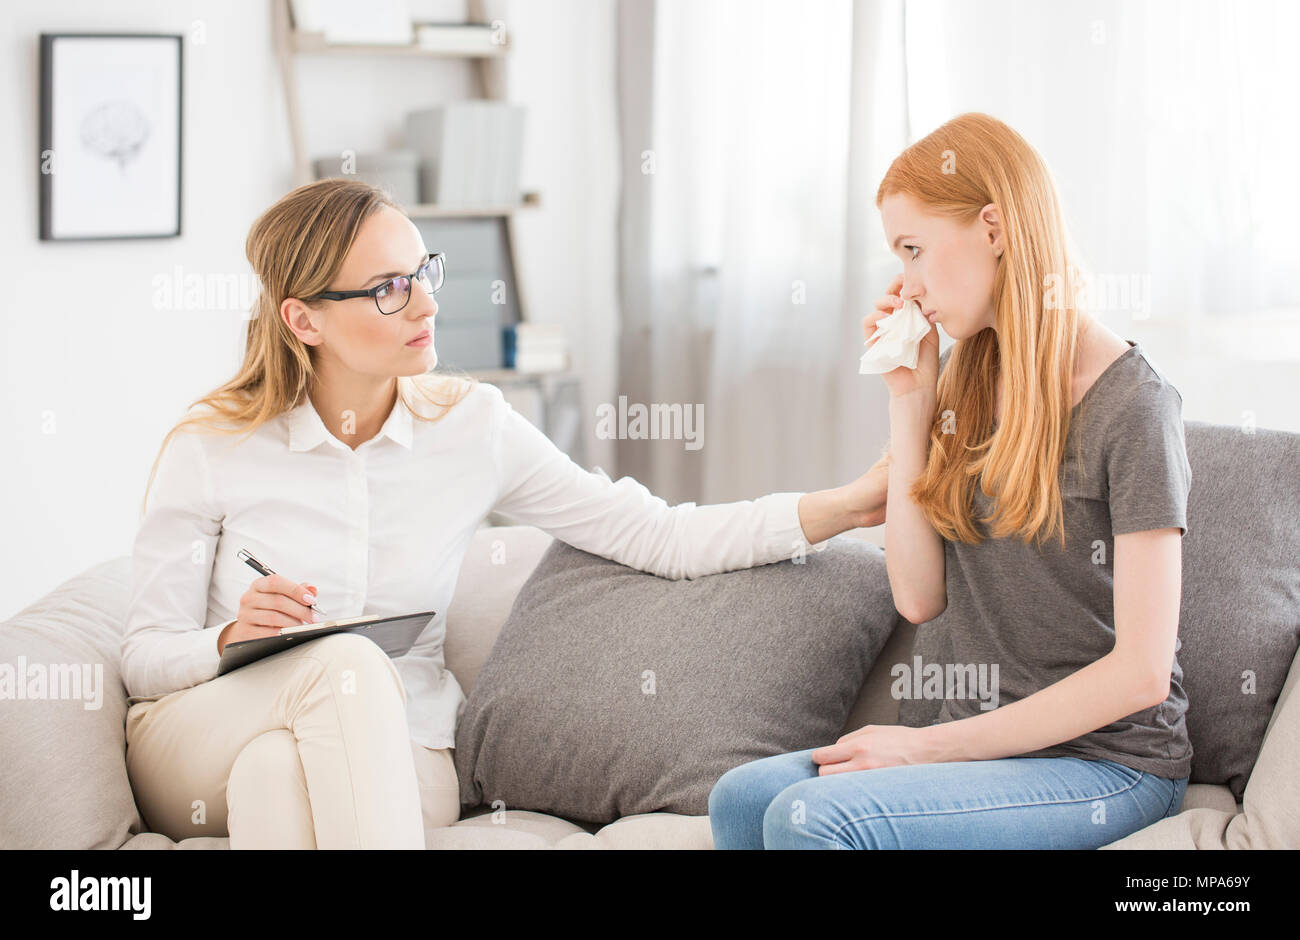 Medical concept - female psychologist comforting teenage girl with anxiety disorder - Stock Image